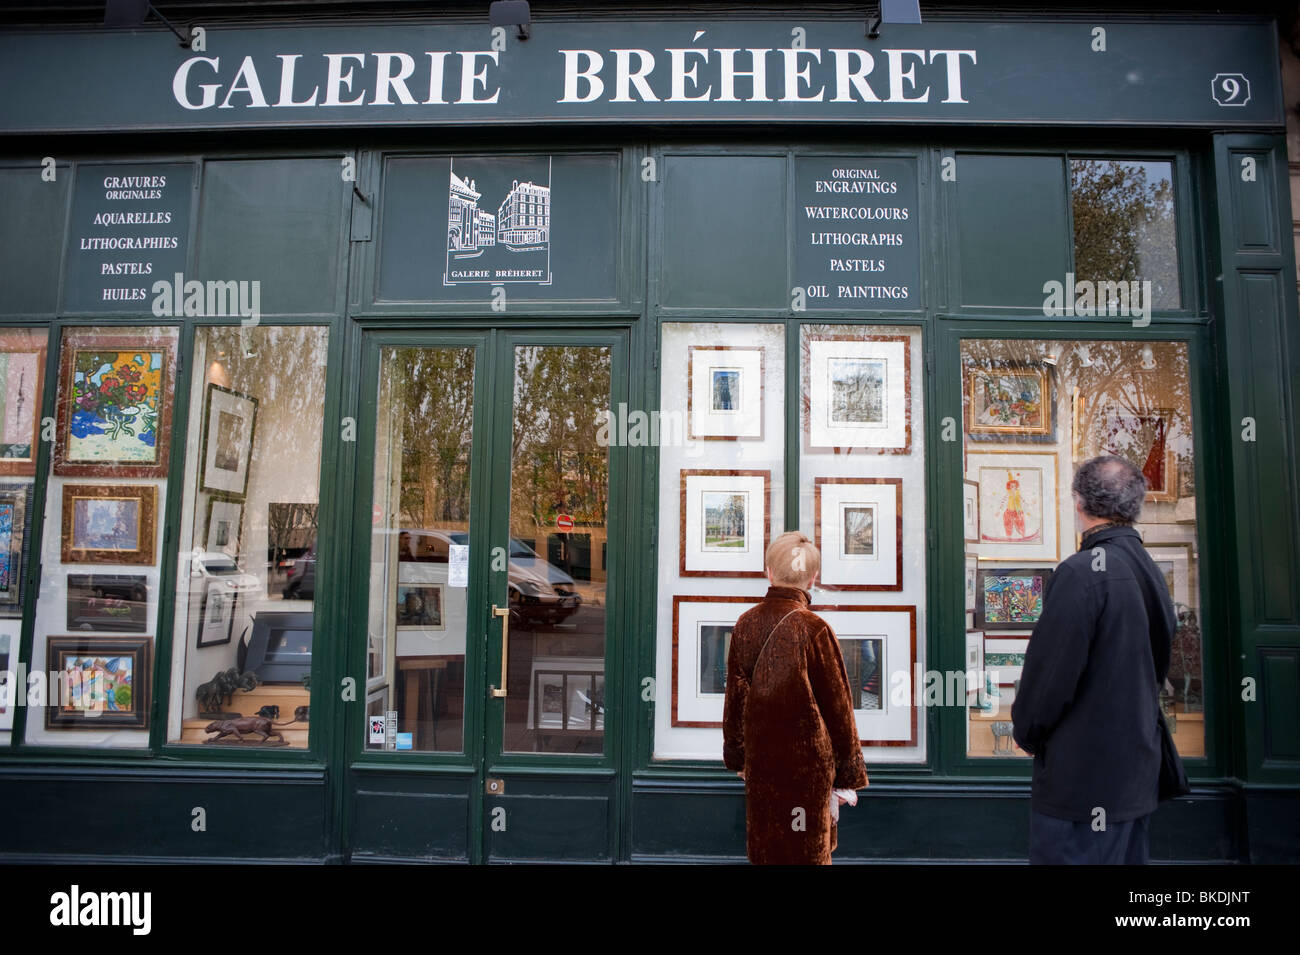 paris france couple window shopping at picture framing store in latin quarter galerie breheret outside shop front saint germain des prs